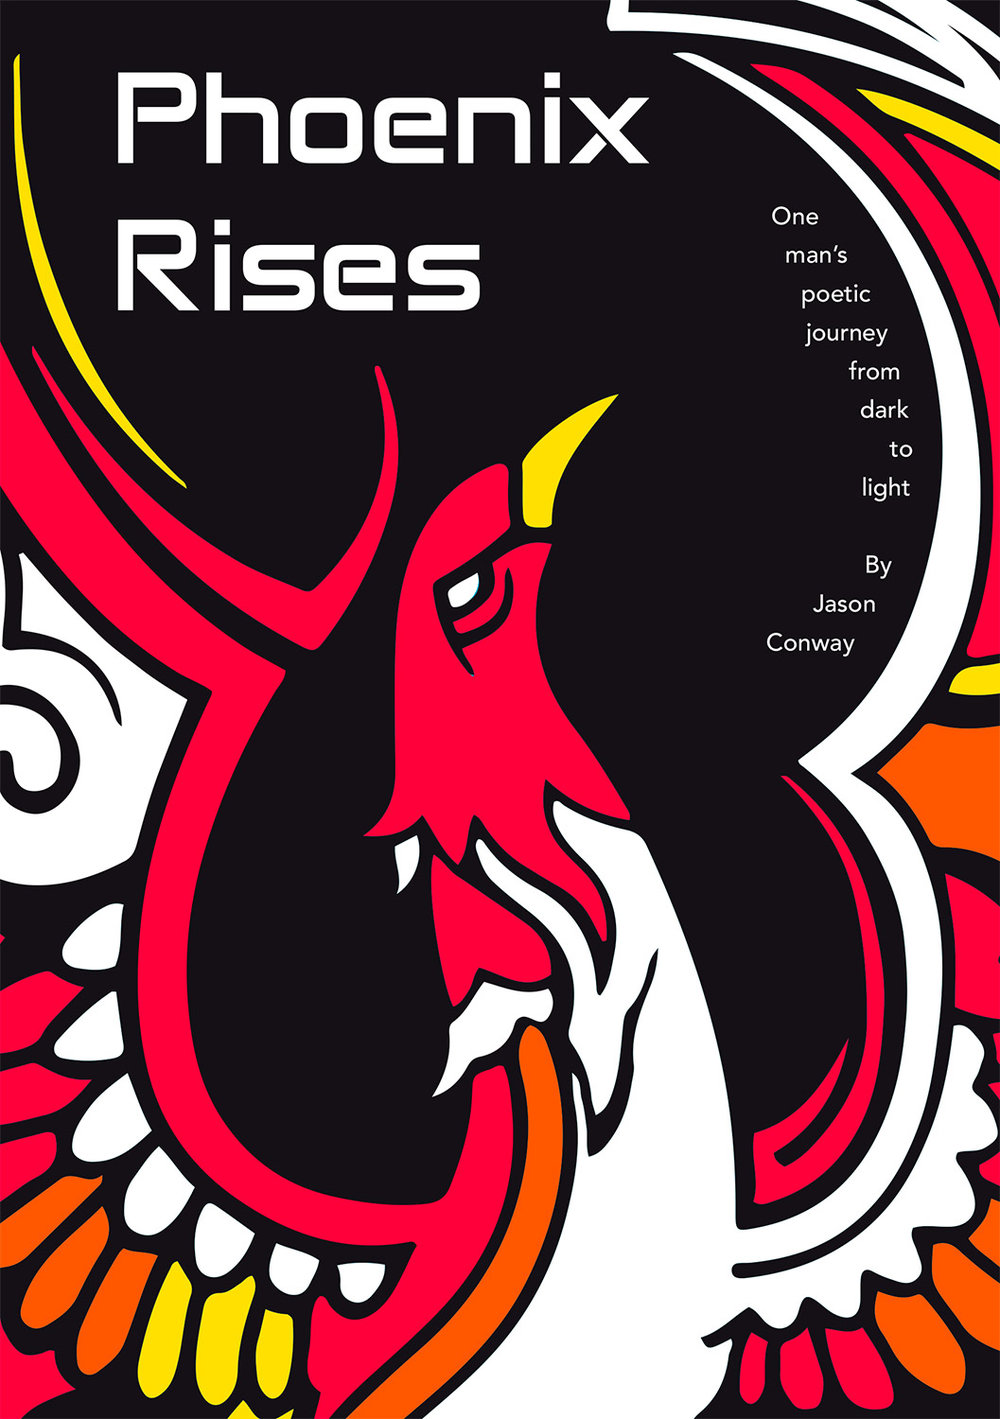 Phoenix Rises Book & Book Cover Design